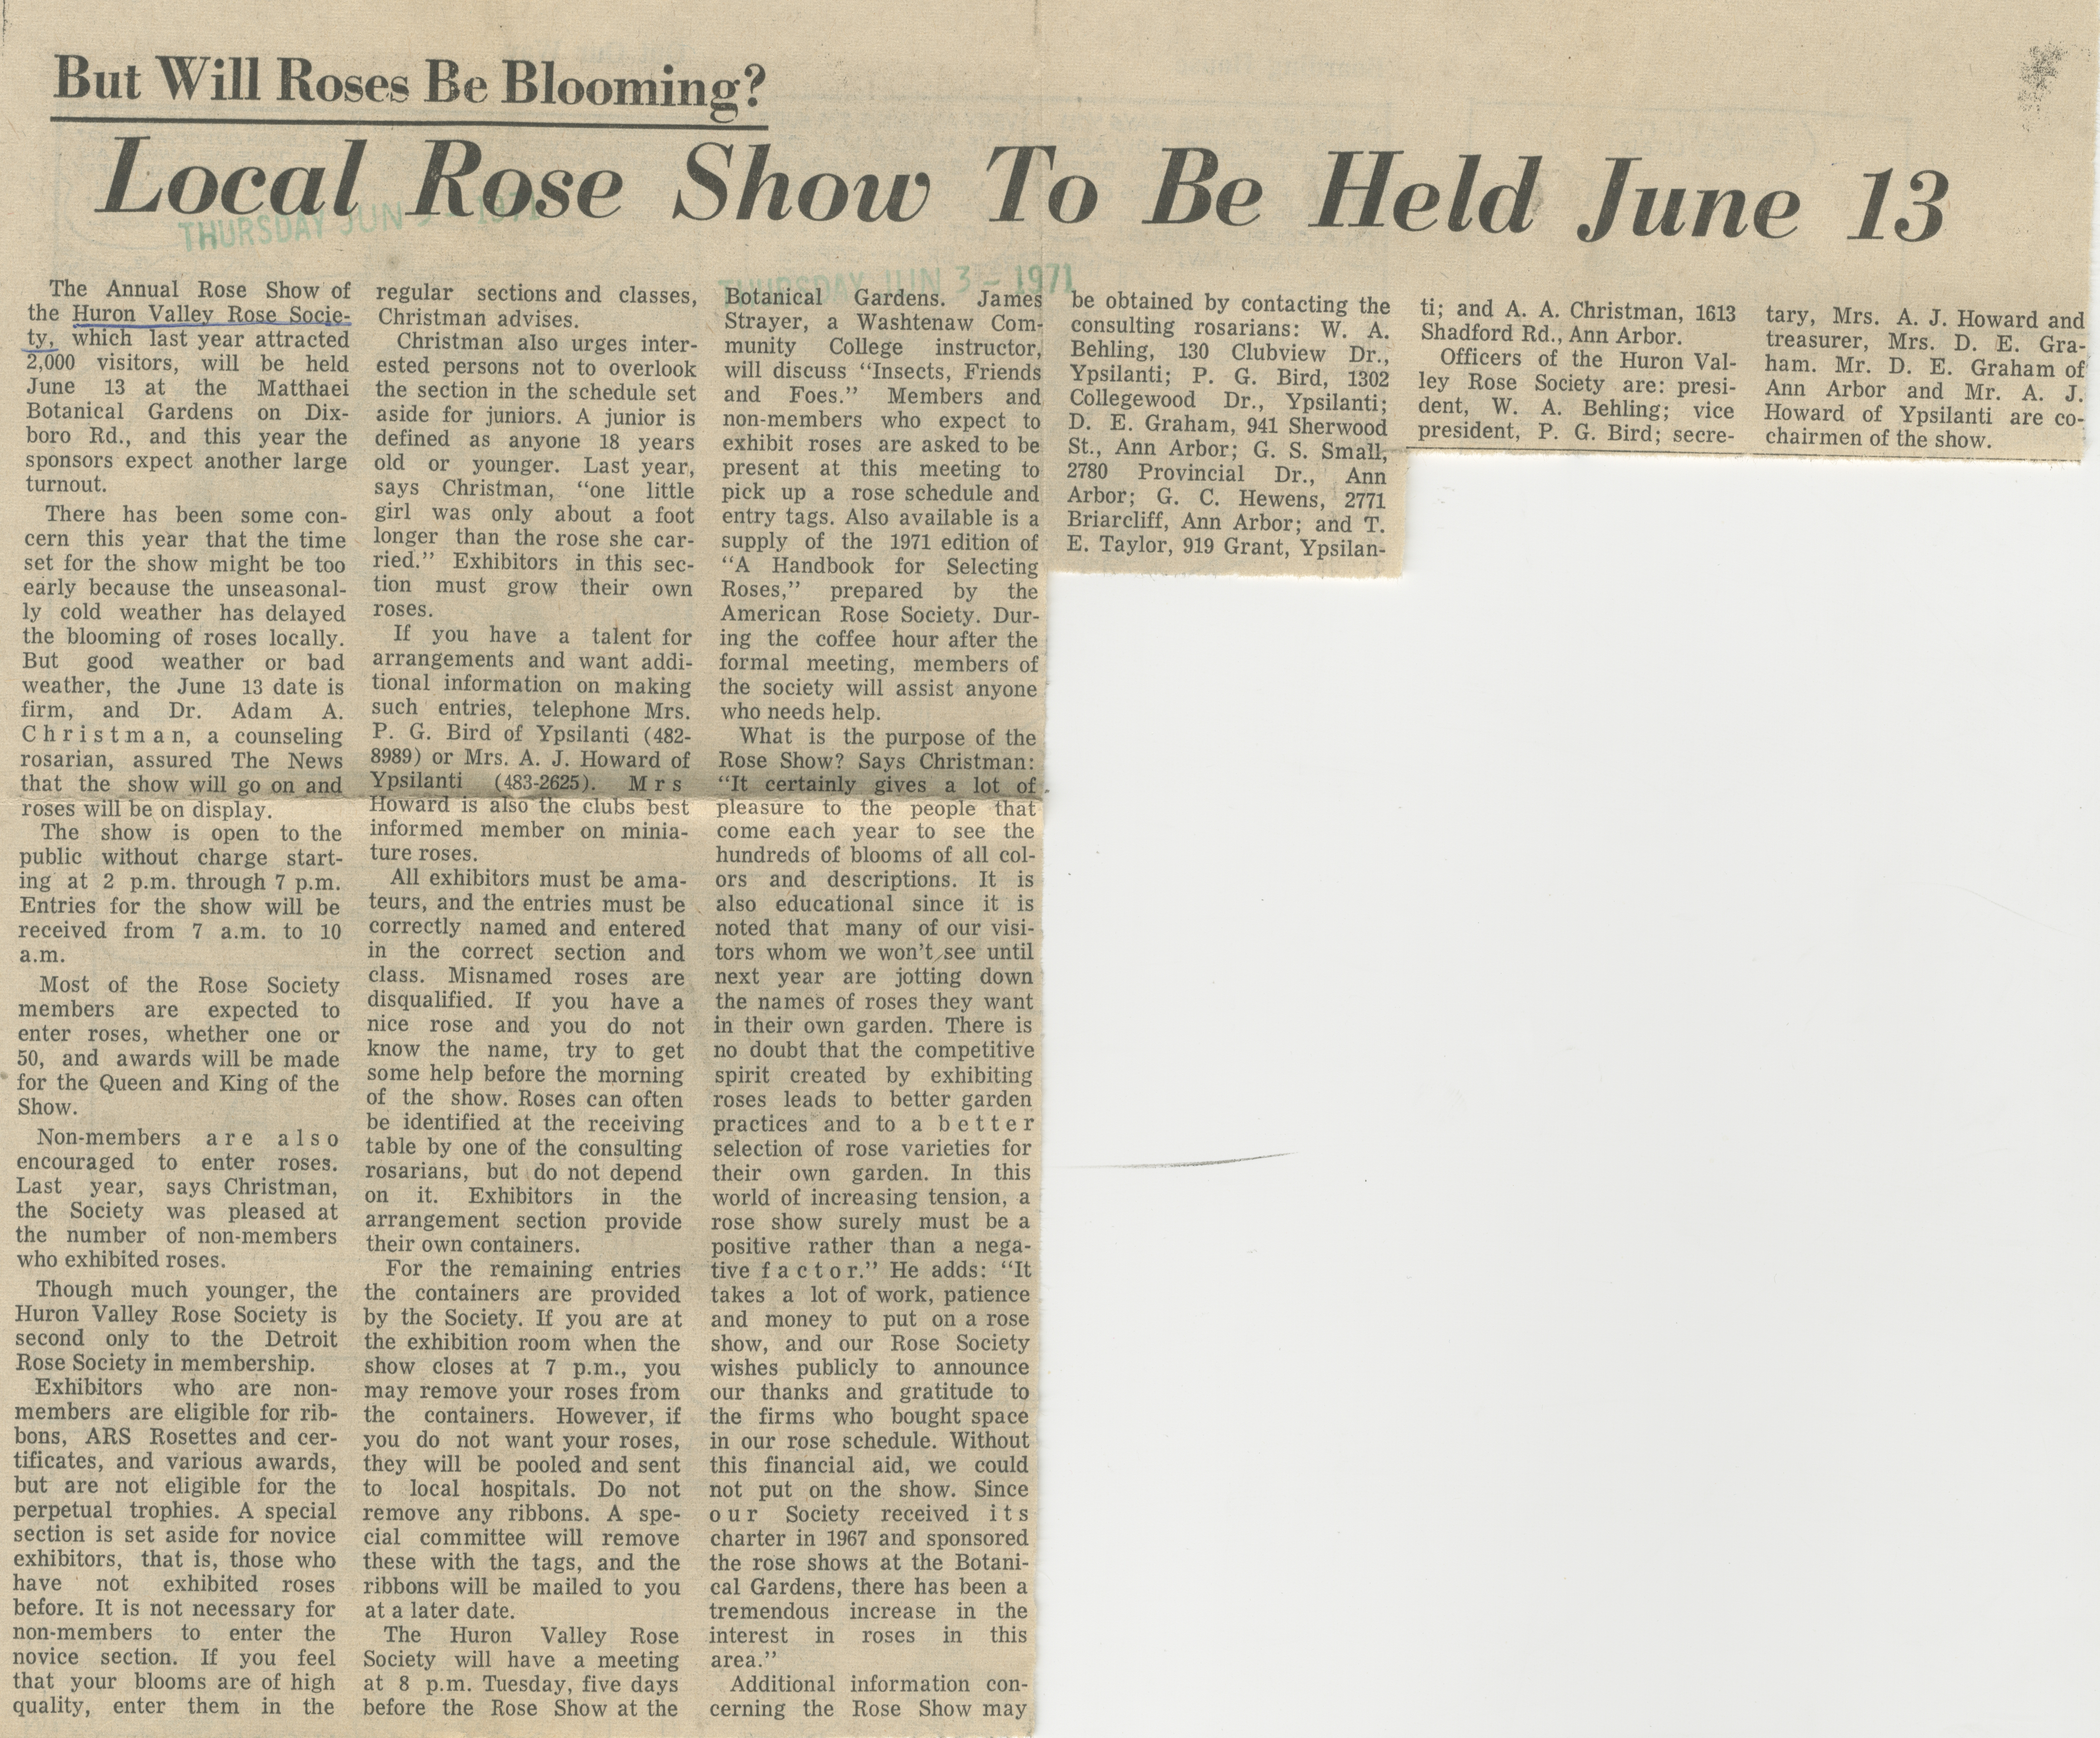 Local Rose Show To Be Held June 13 image